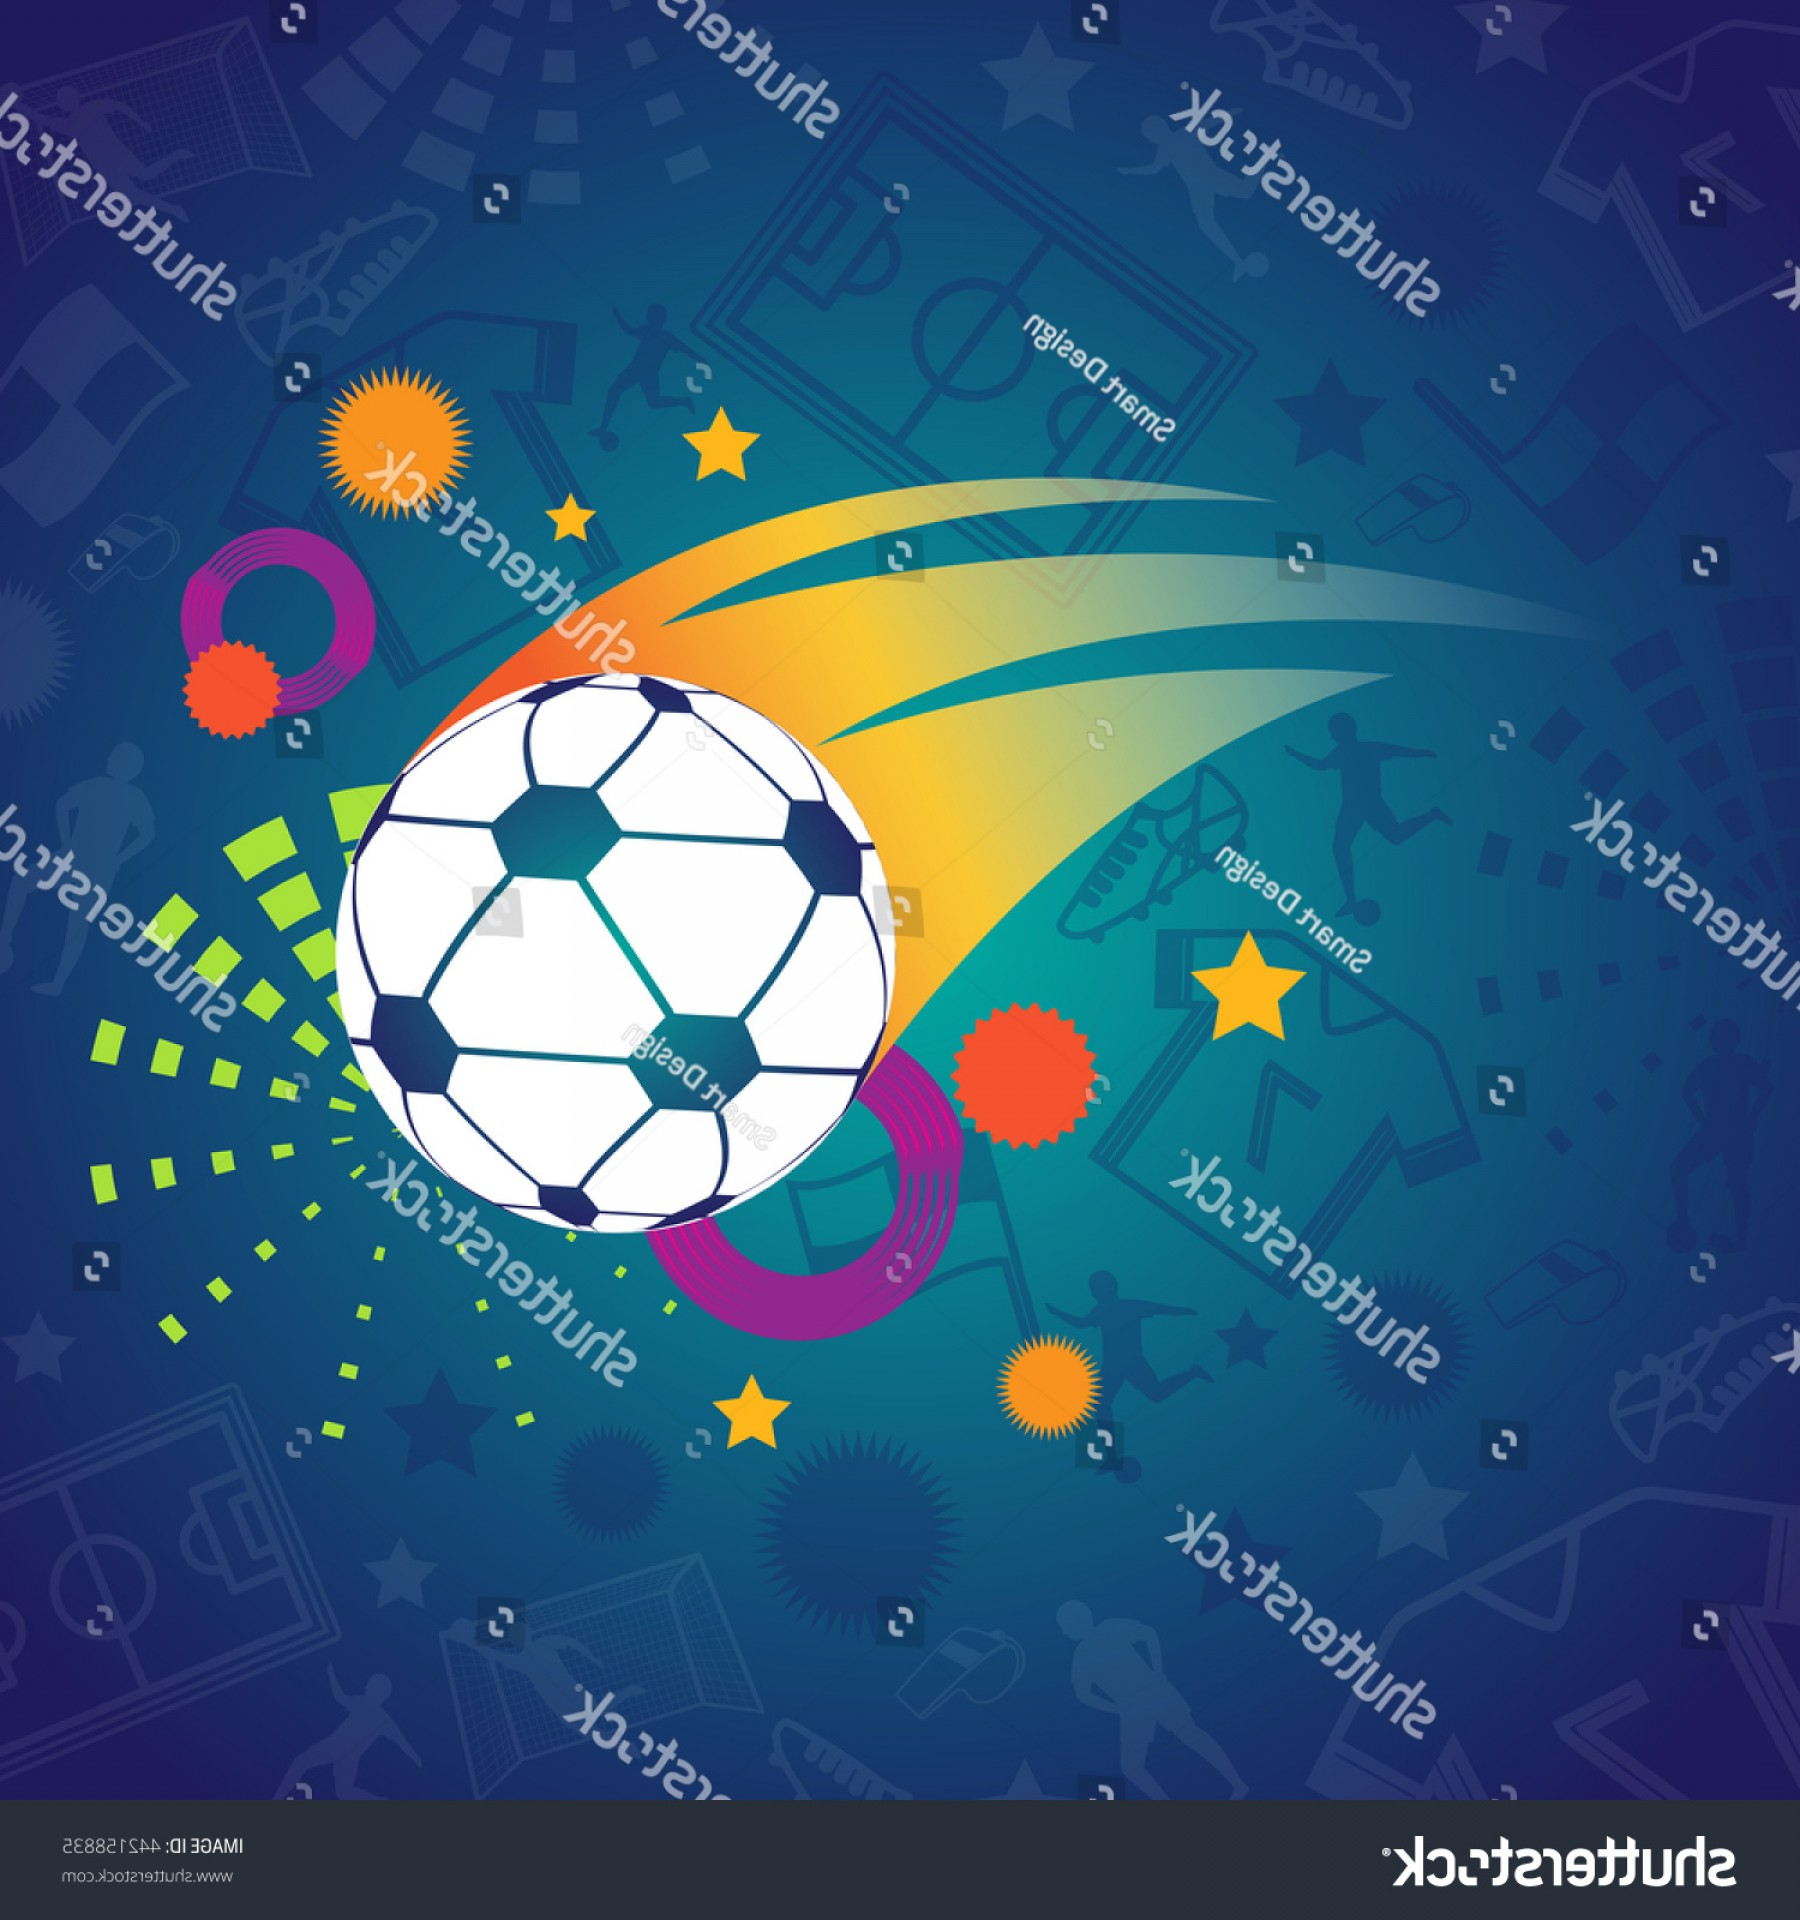 Soccer Blue Background Vector Graphics: Soccer Abstract Blue Background Football